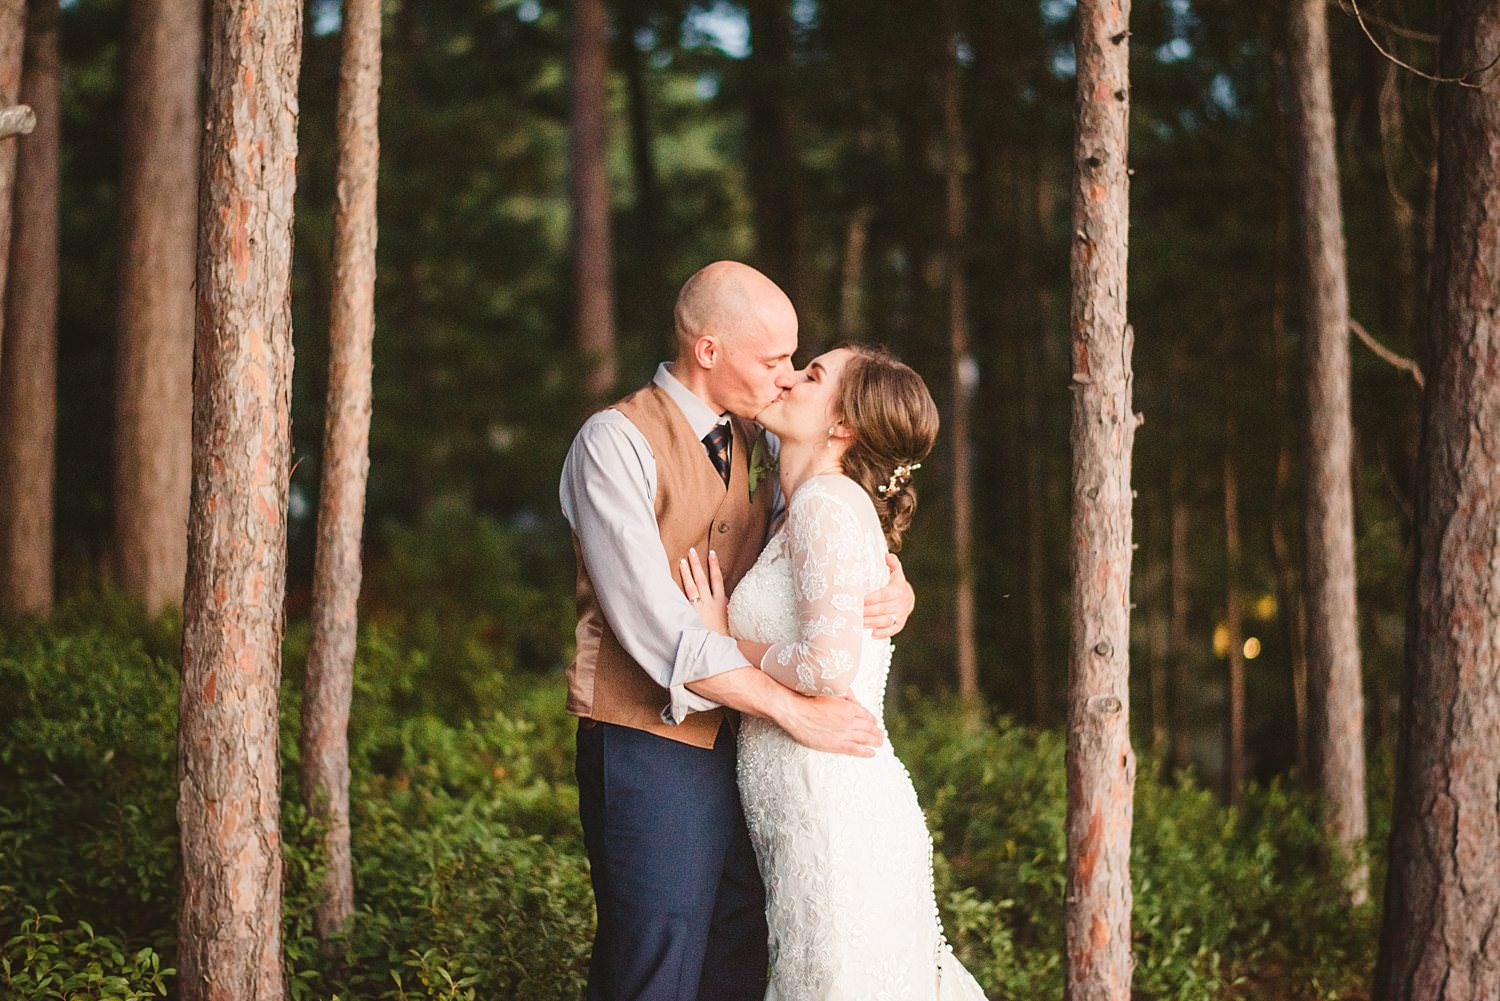 Northern Michigan Nature Backyard Elopement Intimate Wedding 164.jpg